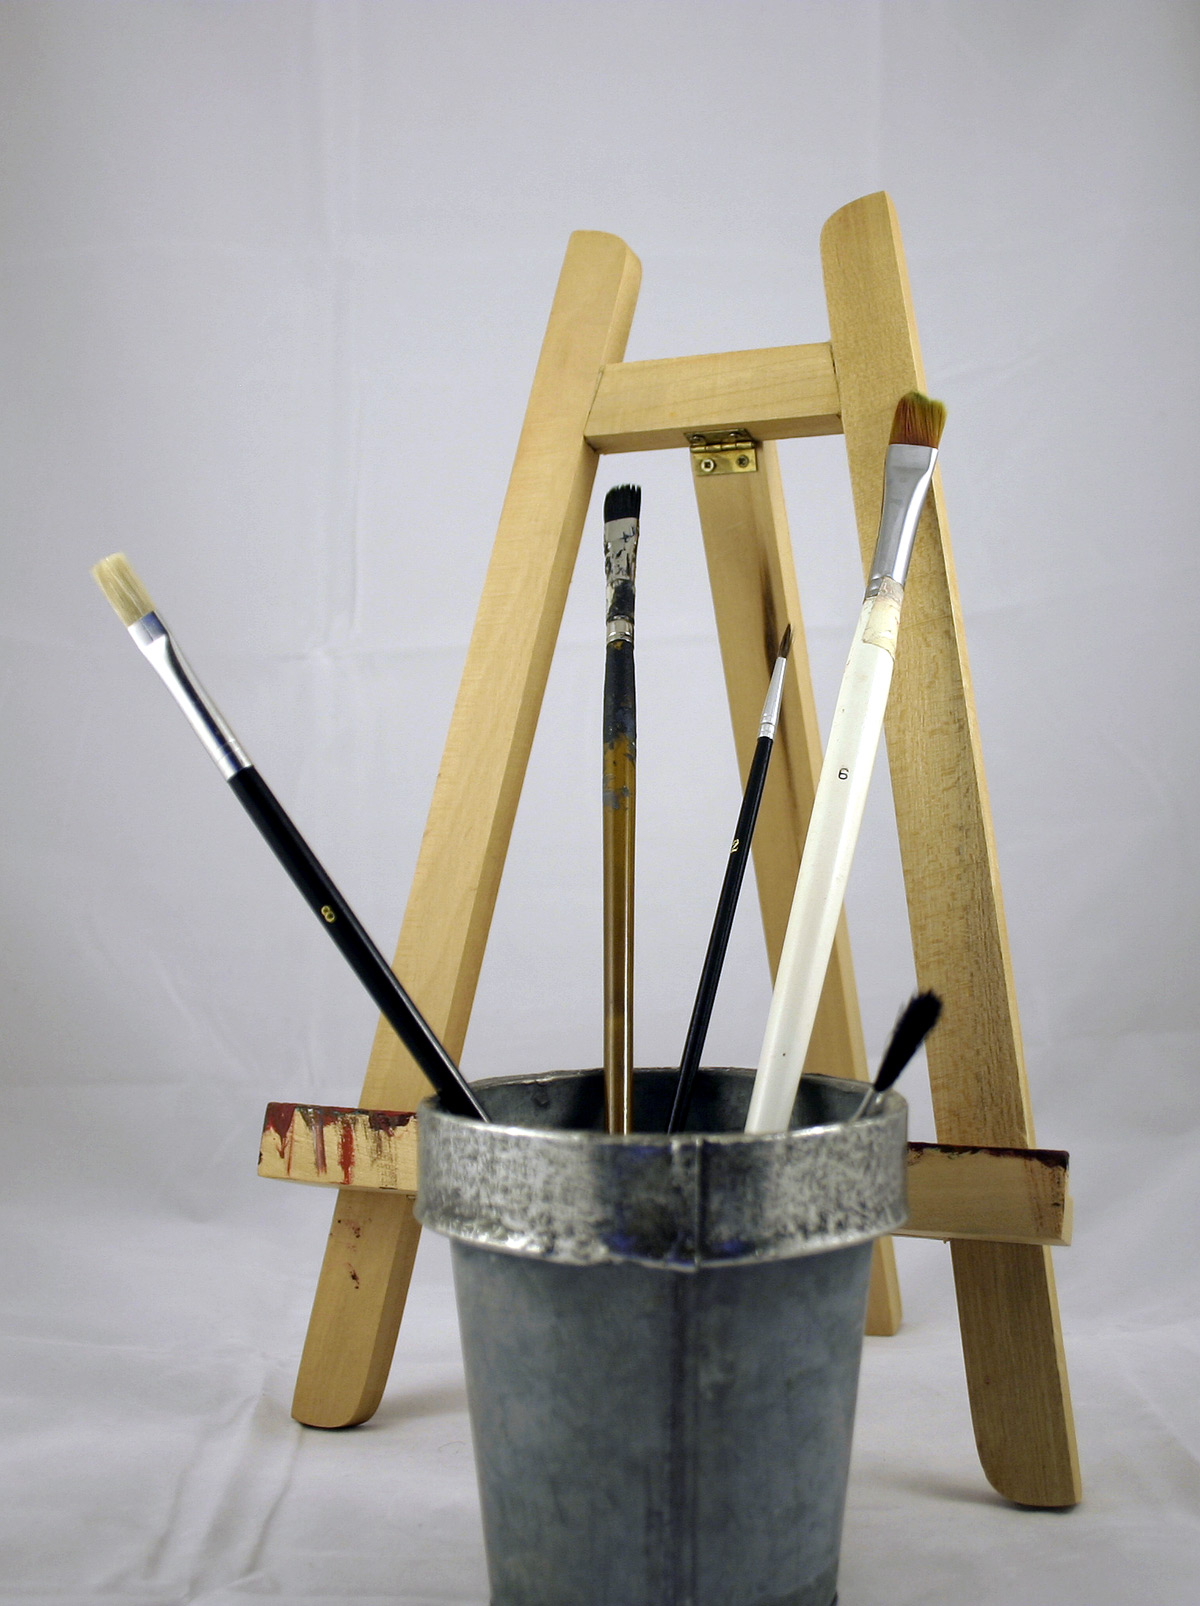 Paint brushes and display easel, Art, Brush, Craft, Display, HQ Photo